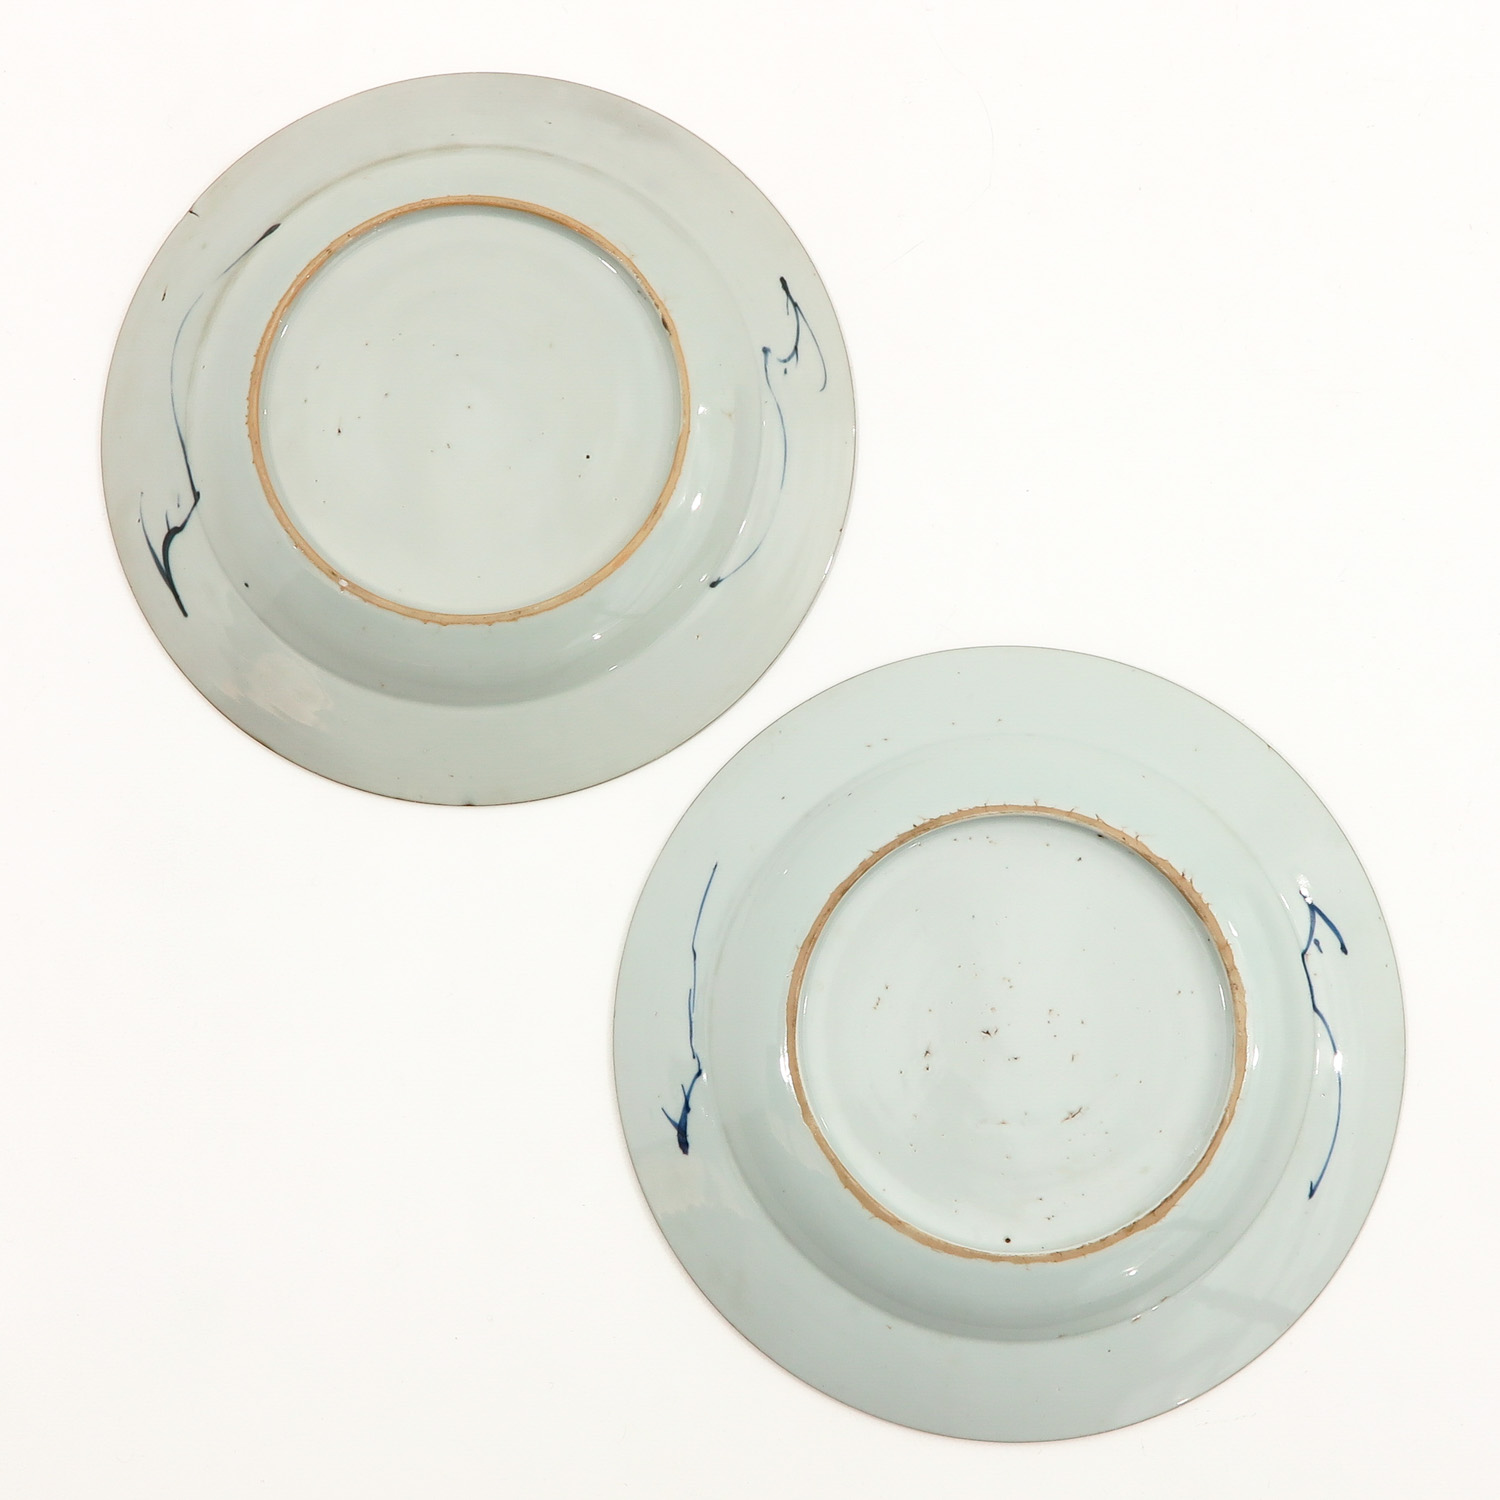 A Pair of Blue and White Plates - Image 2 of 9